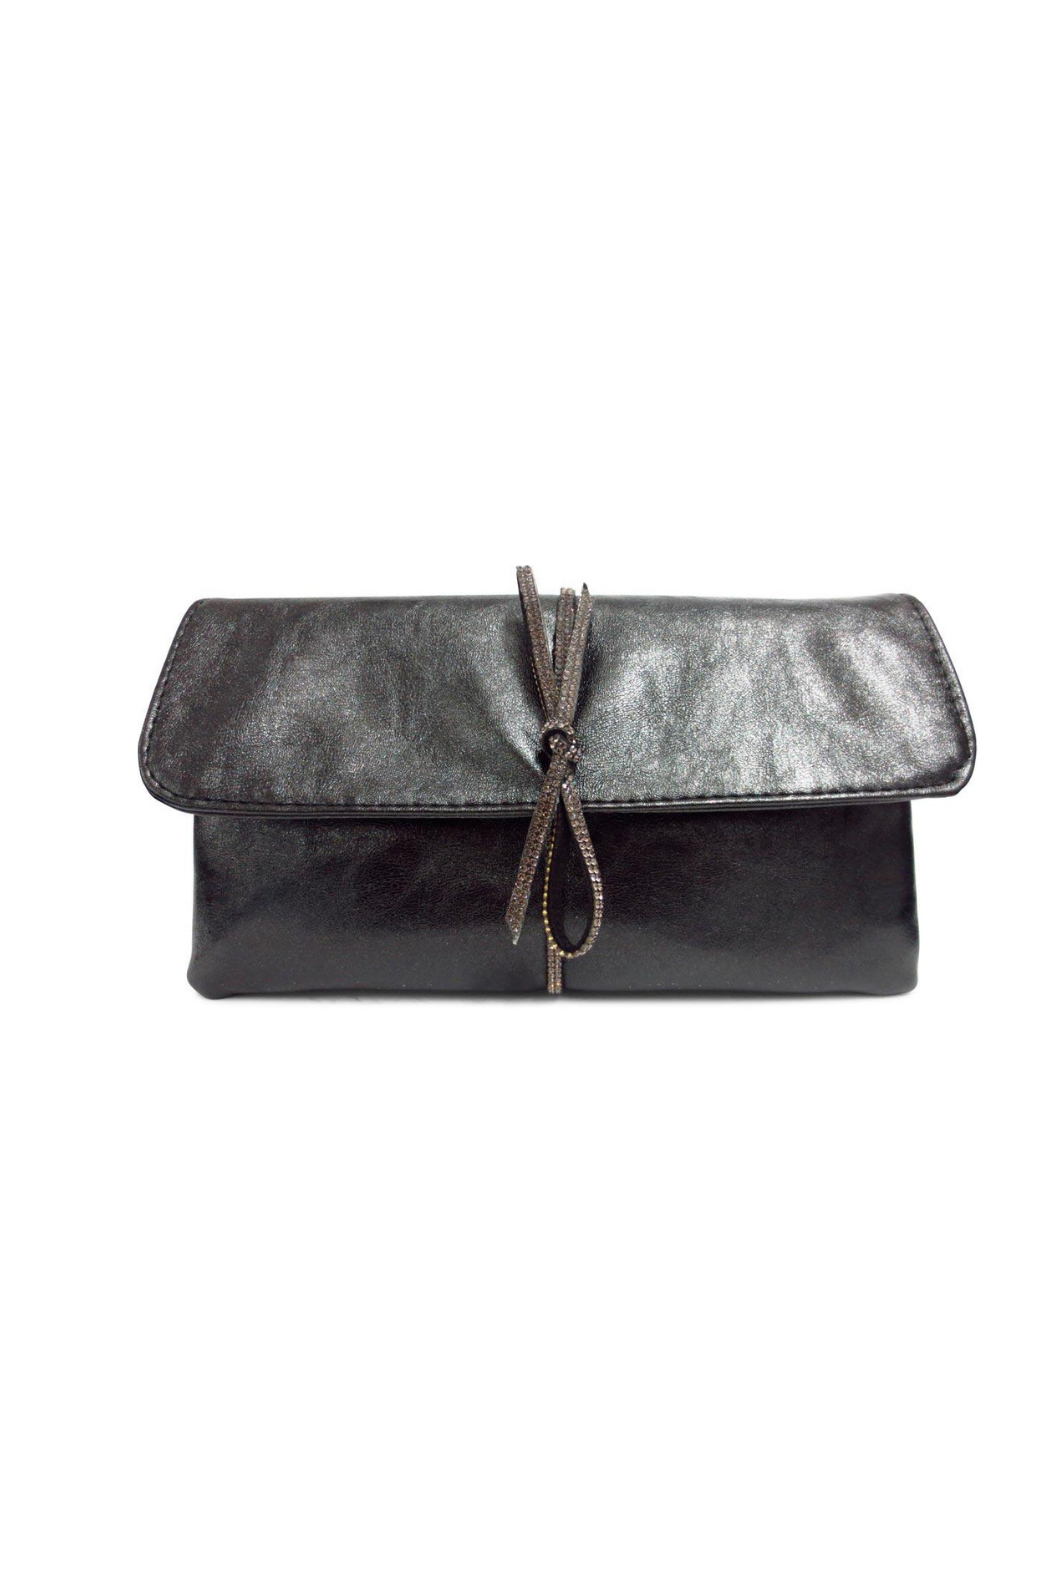 Sondra Roberts Bow Detail Clutch - Main Image